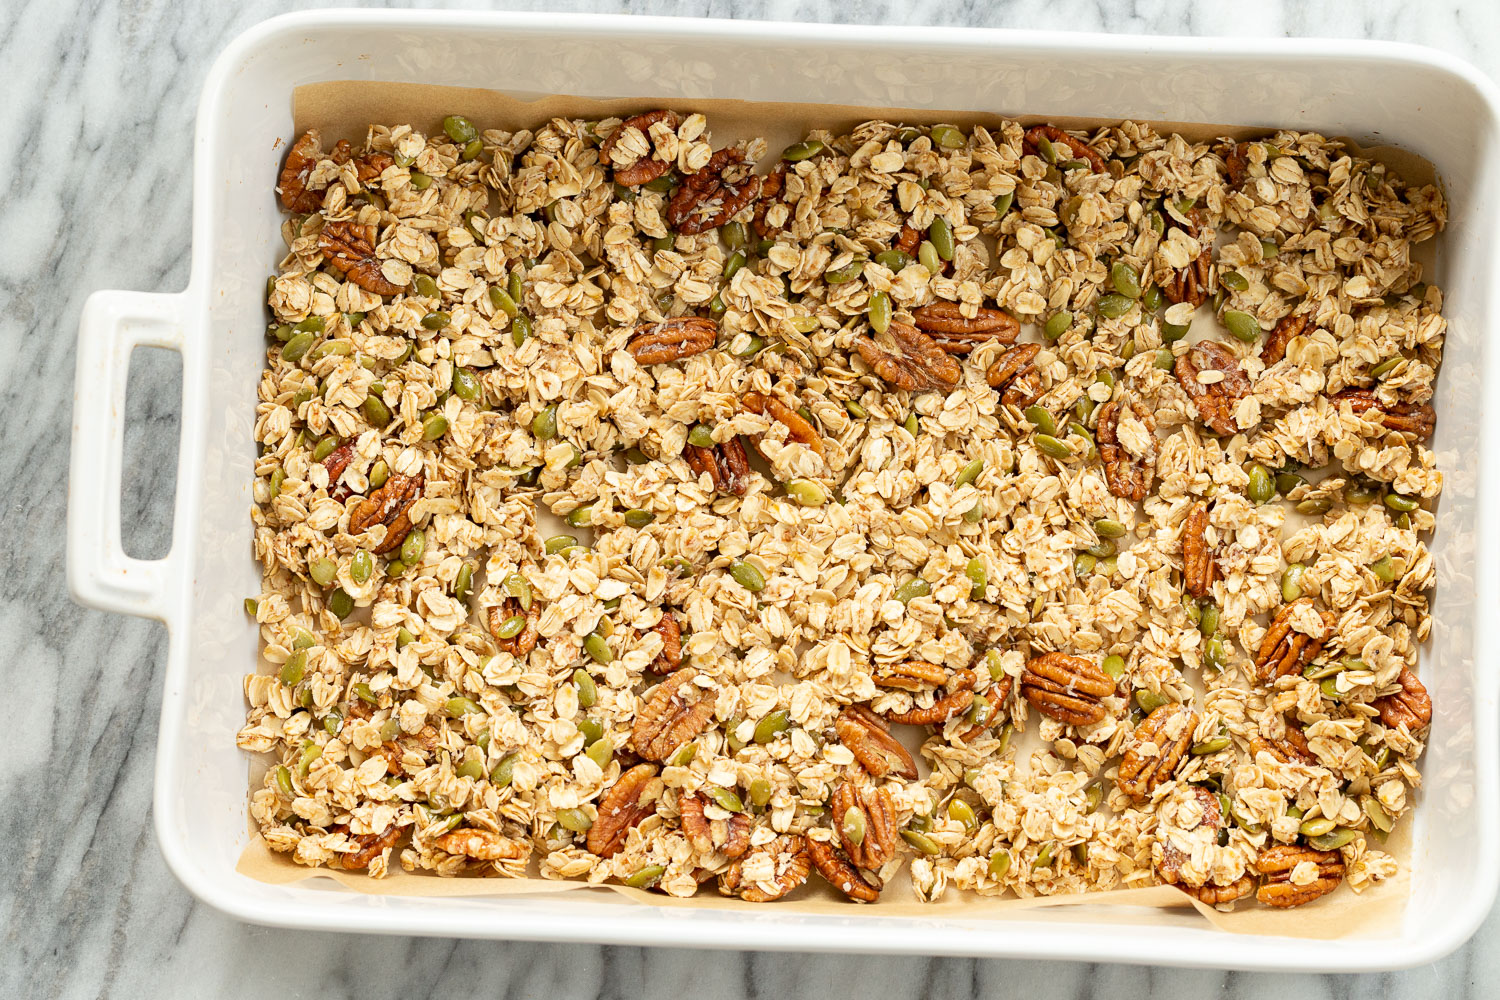 Our Vegan Maple Pecan Granola in a white baking dish